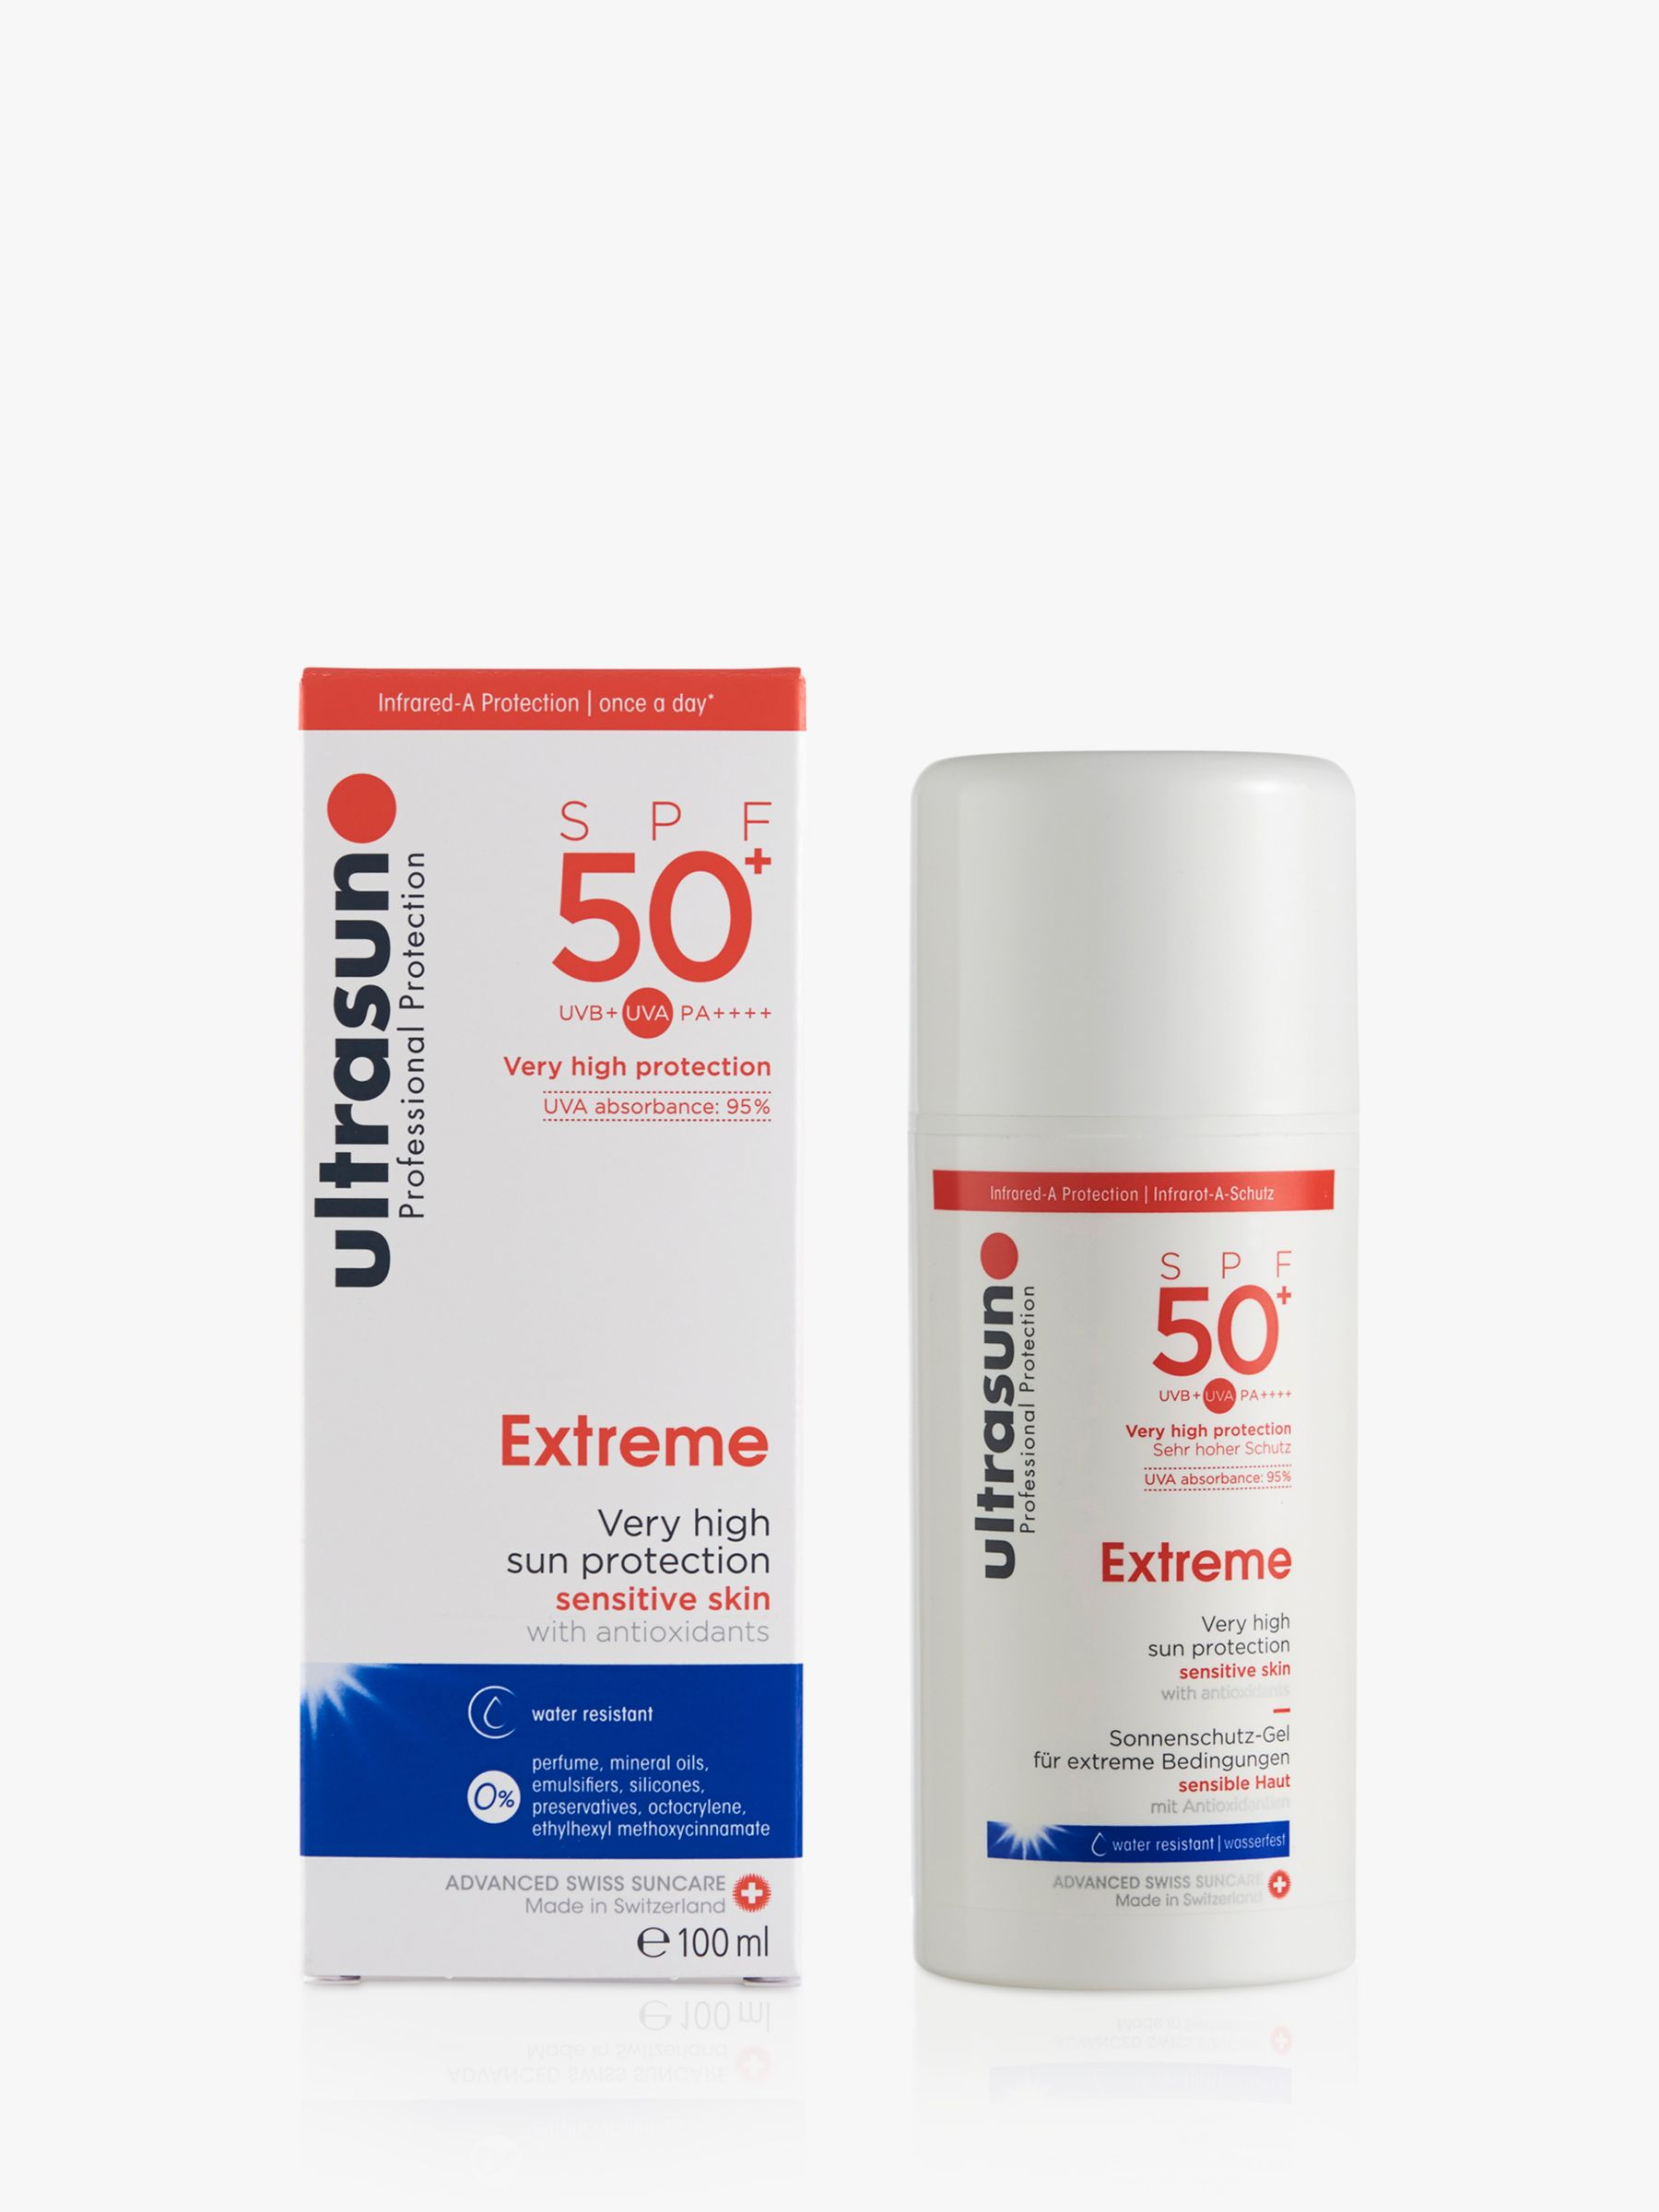 Ultrasun Ultrasun Extreme Sensitive SPF 50+ Sun Lotion, 100ml